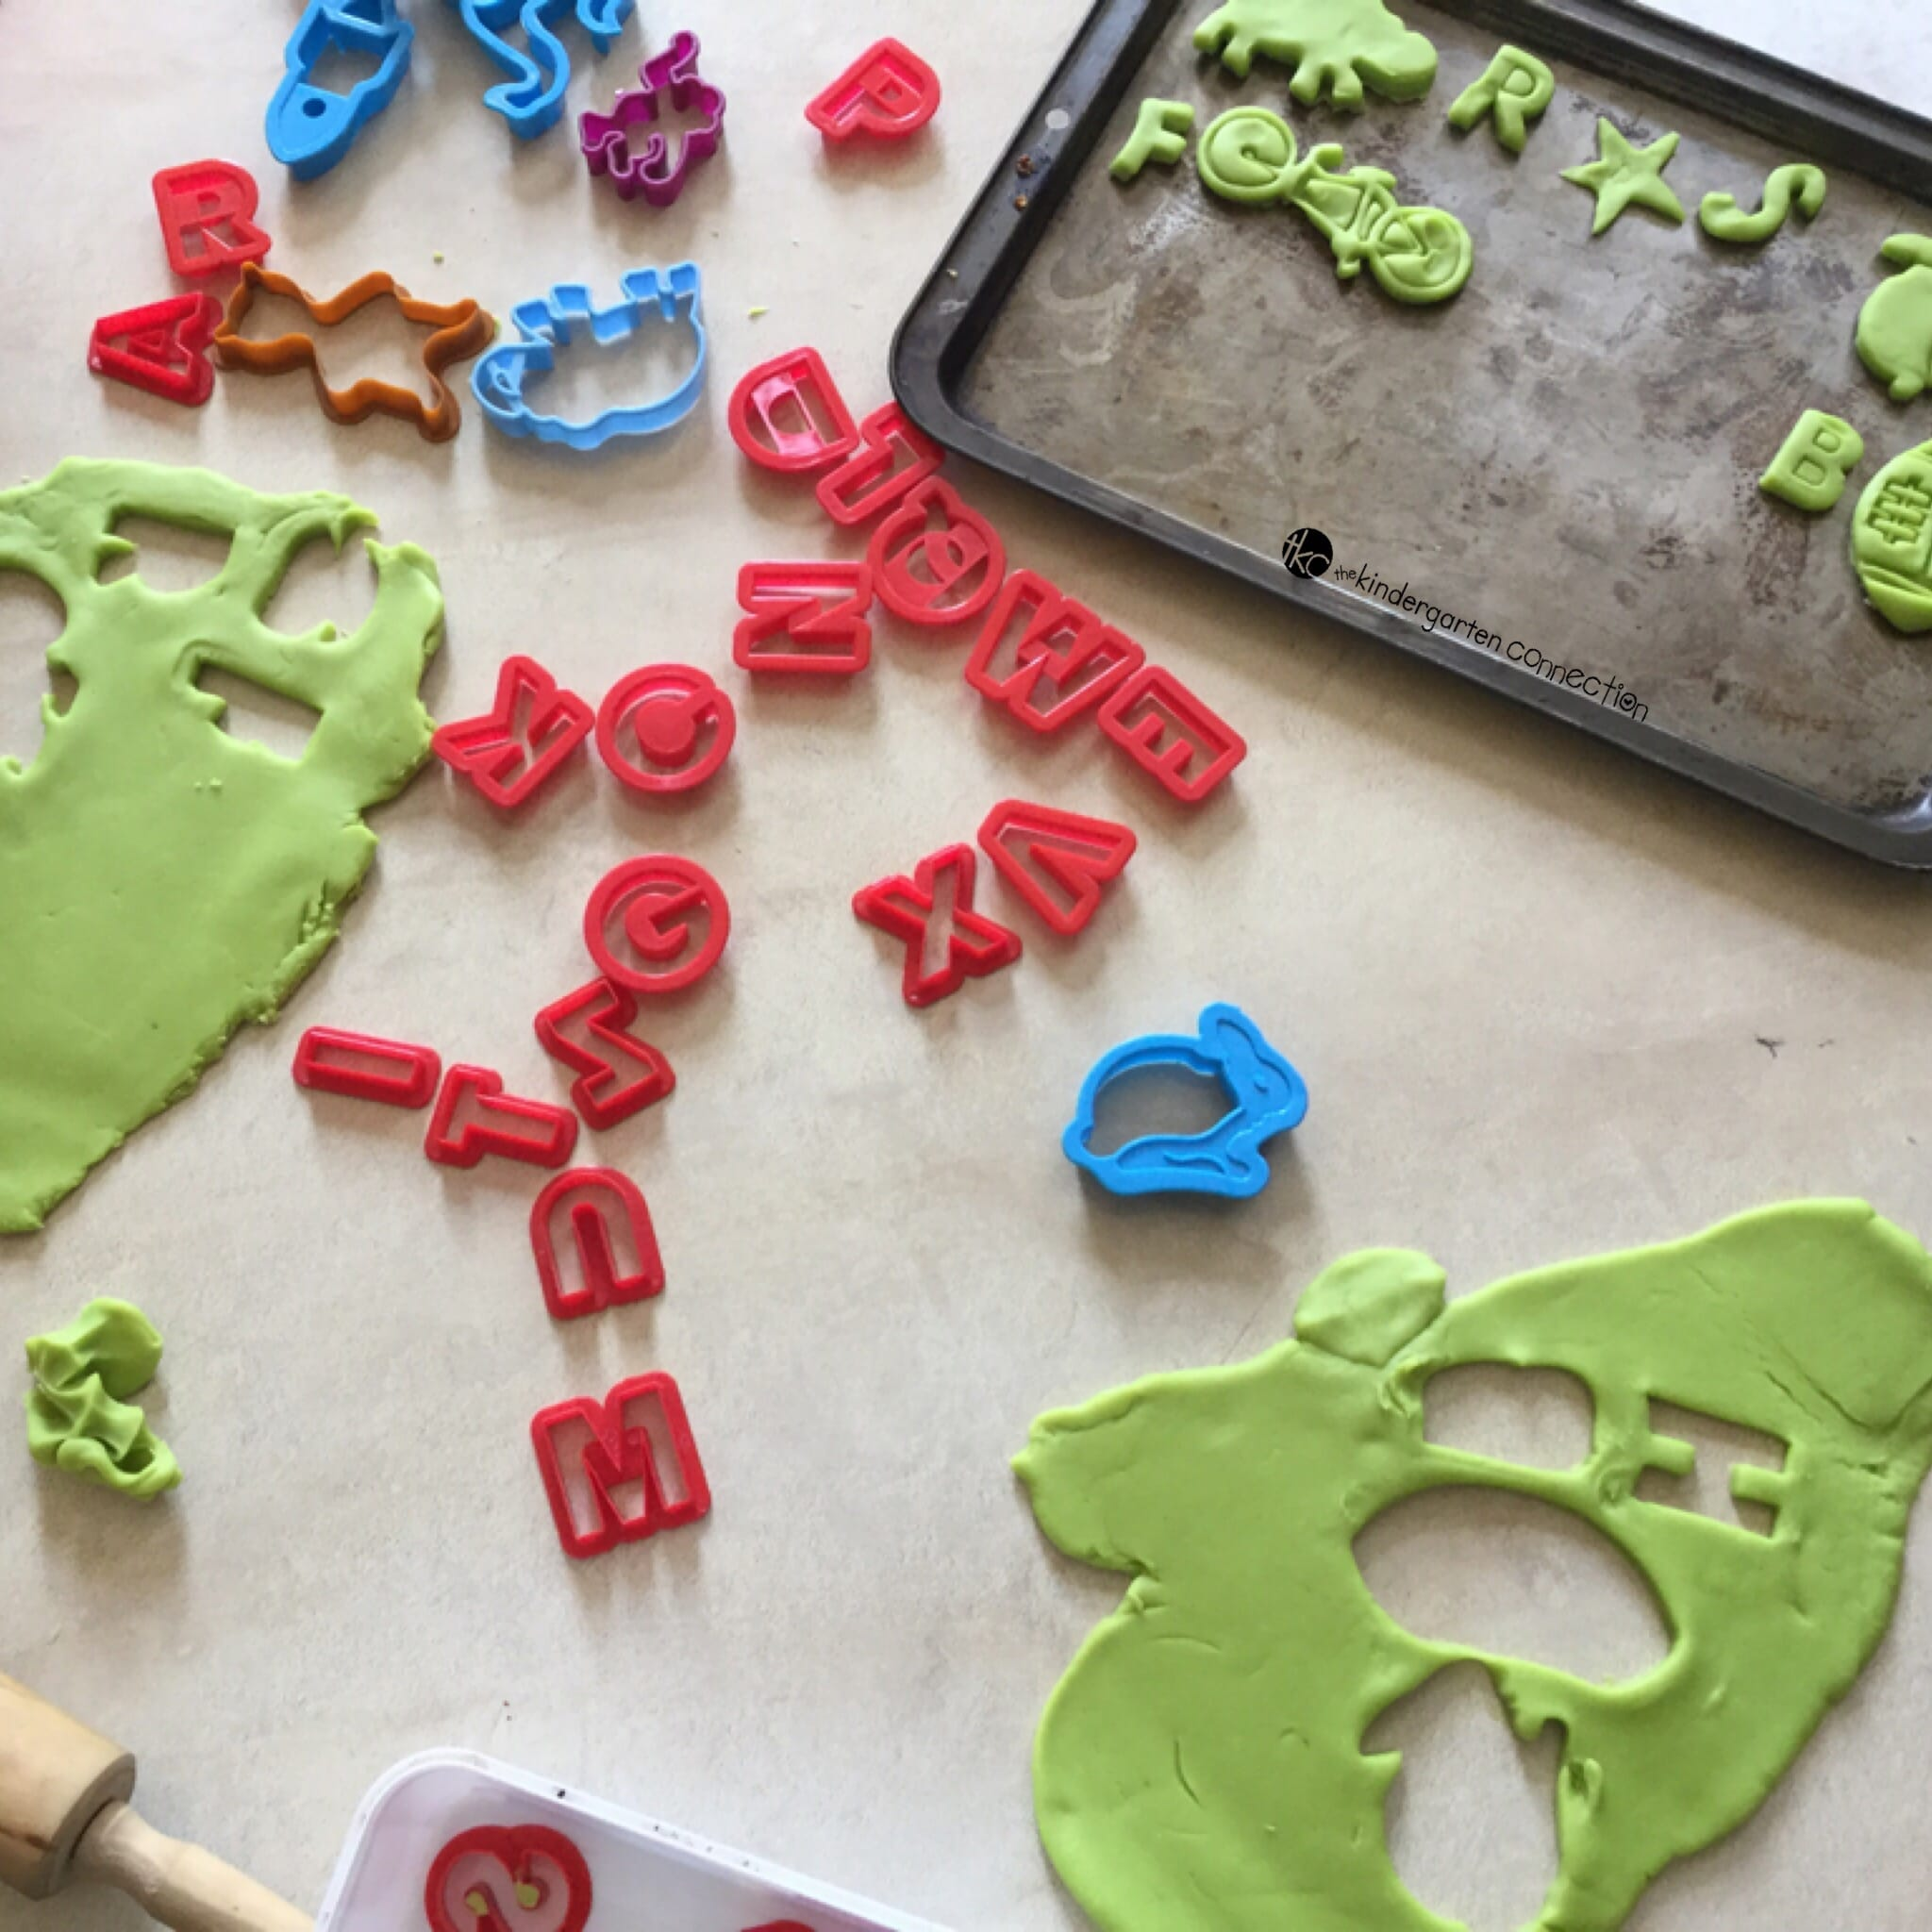 Playdough is so versatile and makes a great sensory material to use for learning. Use playdough for this fun initial sound playdough cookies activity!